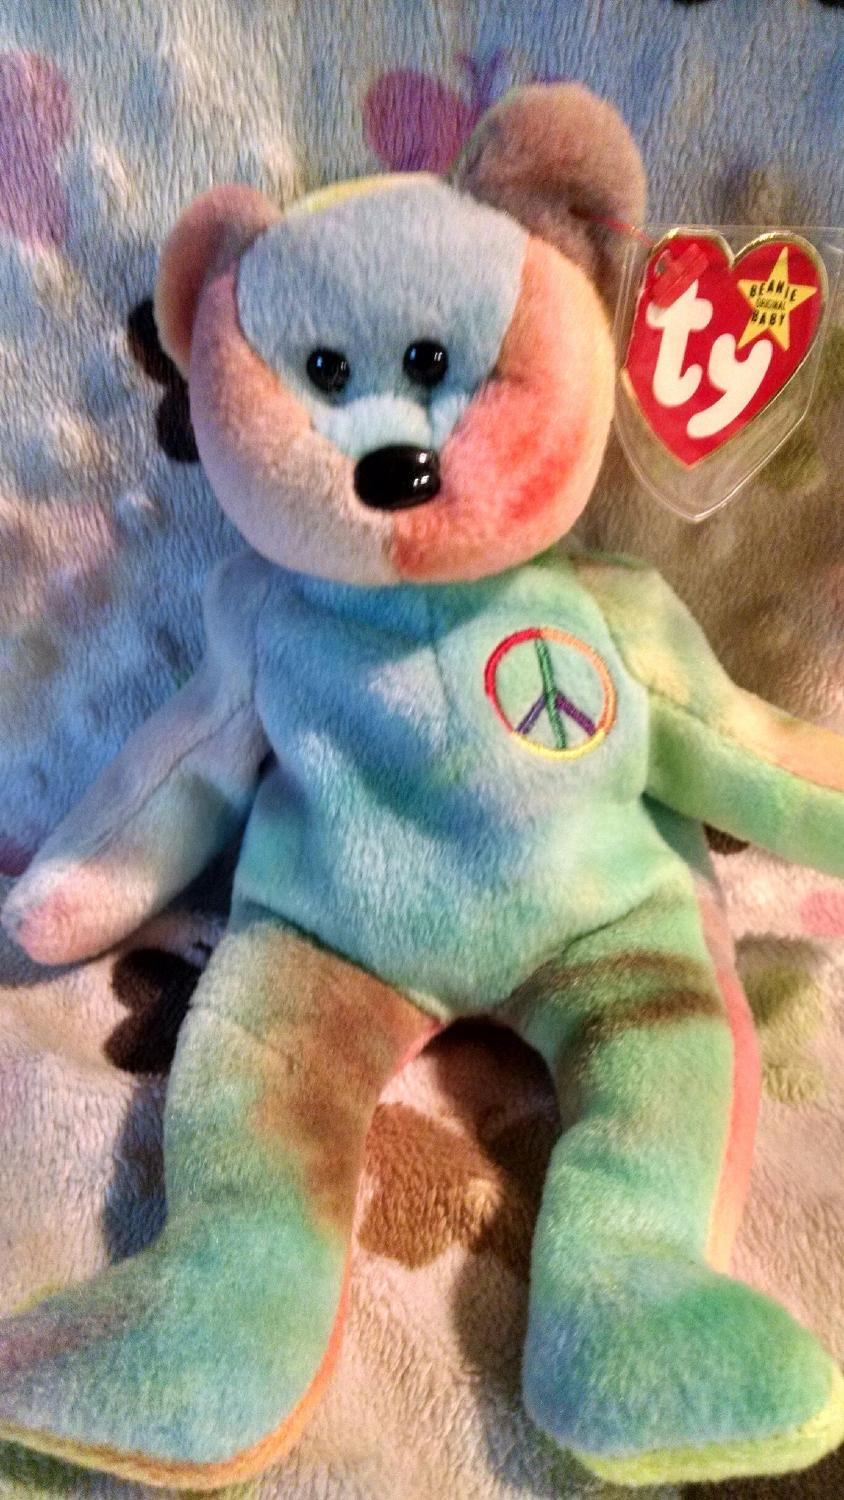 best ty beanie baby rare peace bear for sale in sioux falls south dakota for 2018. Black Bedroom Furniture Sets. Home Design Ideas